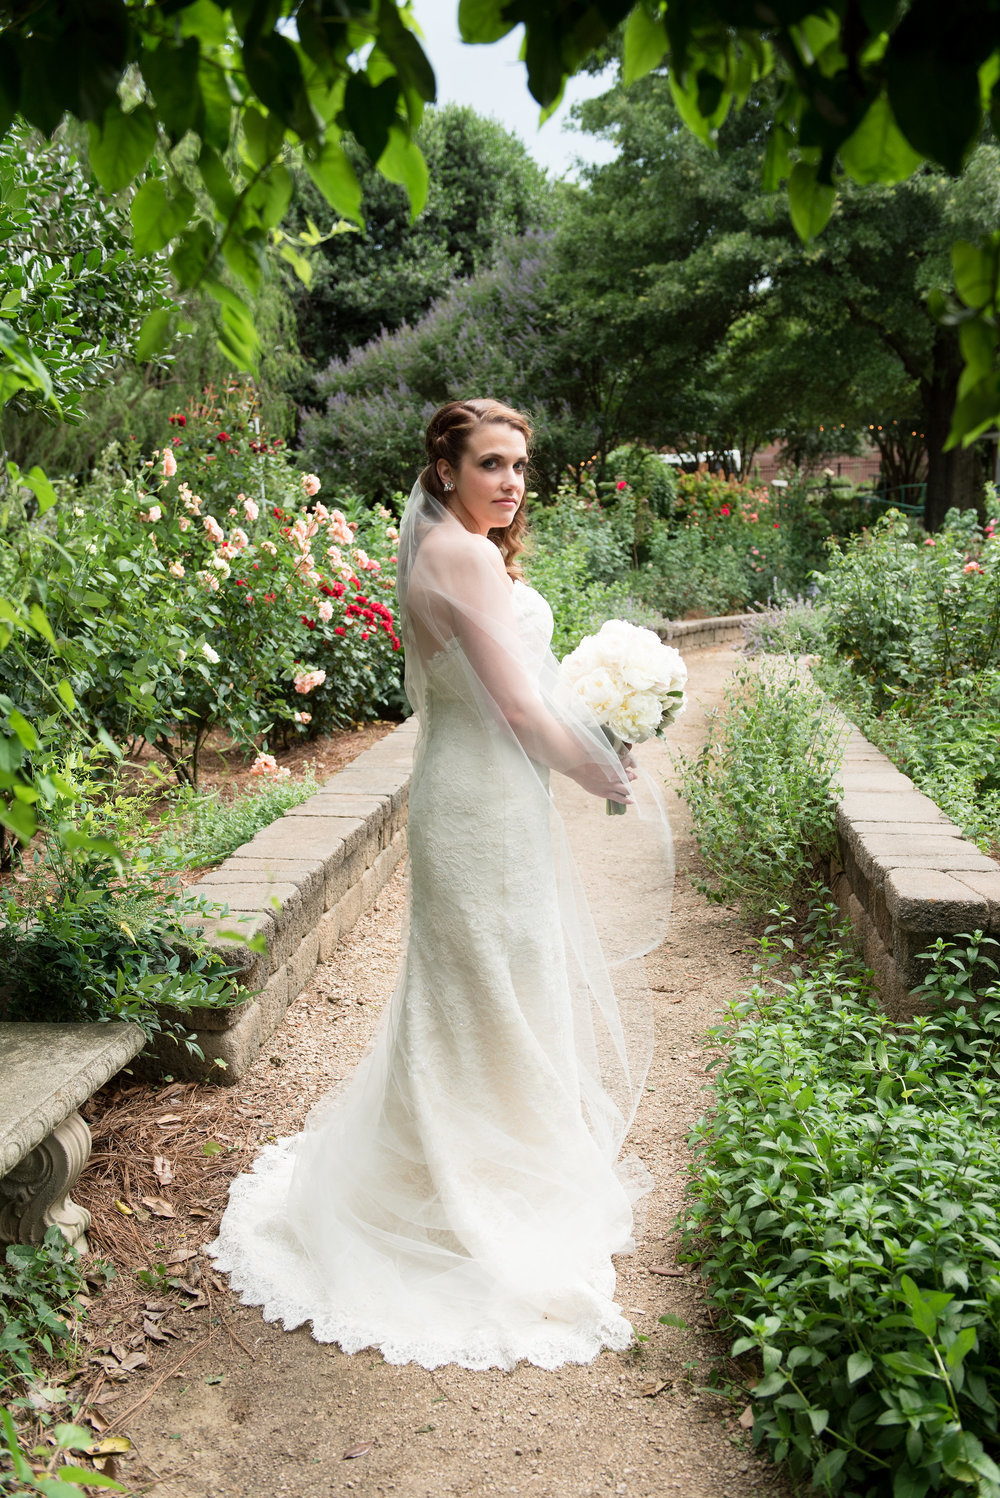 mcgill-rose-garden-bridal-portraits-29.jpg